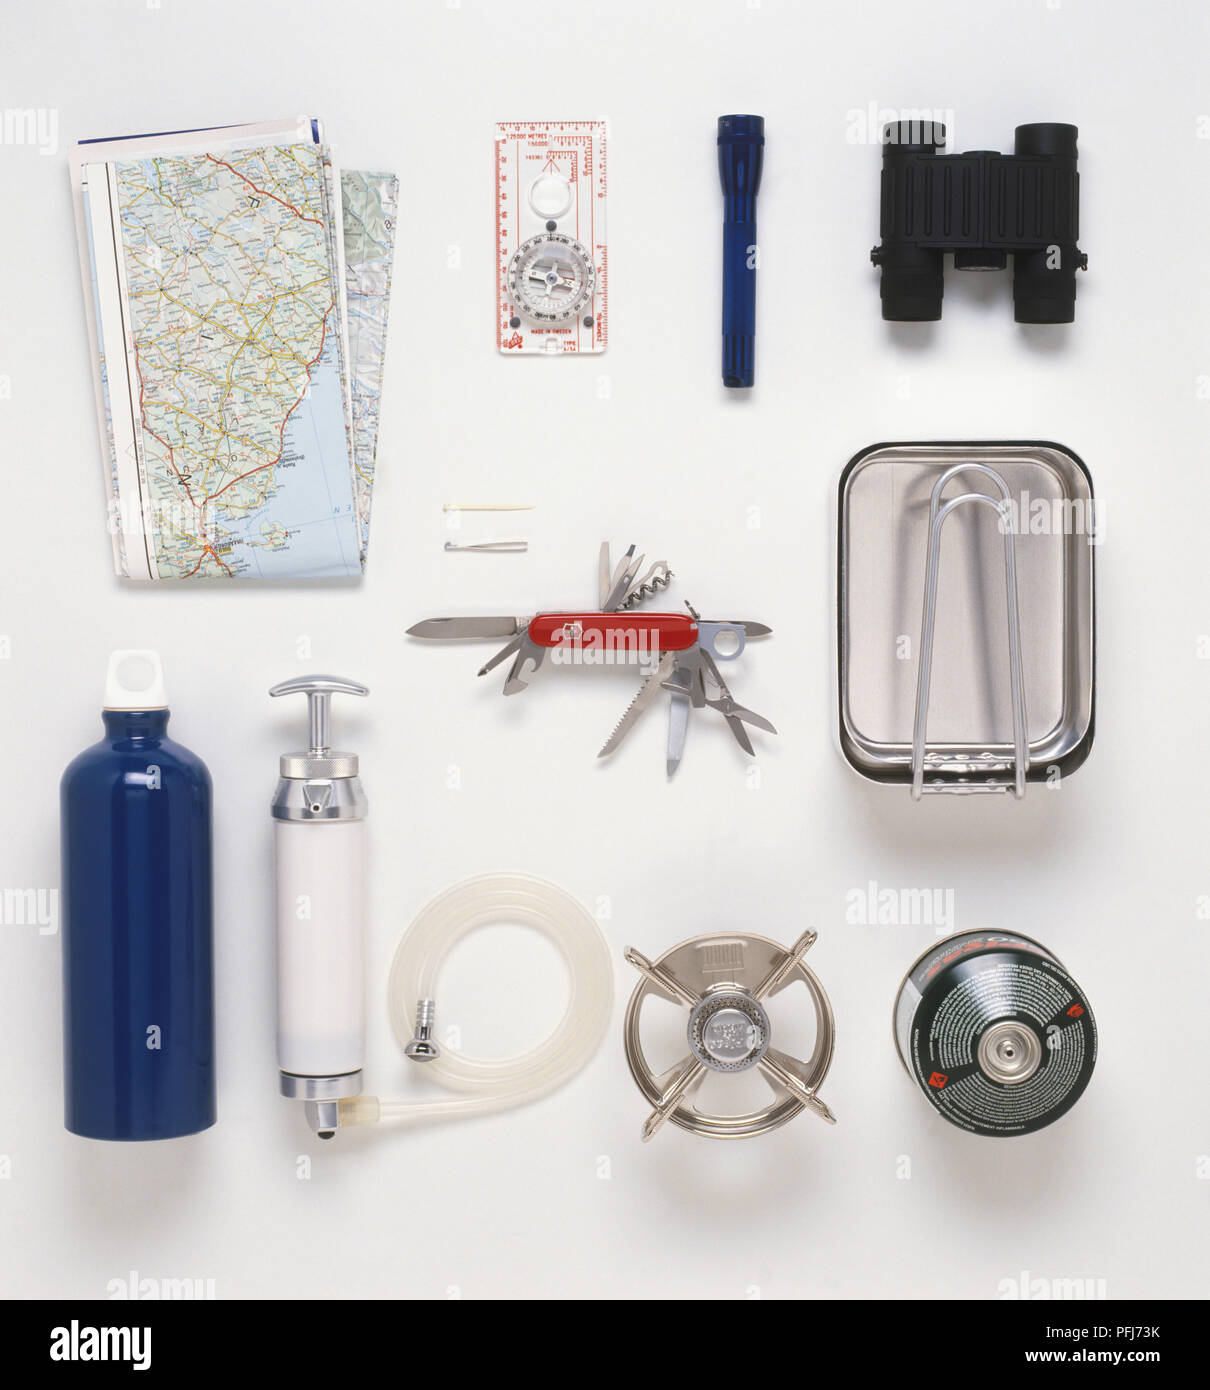 Personal camp kit, map, compass, torch, binoculars, mess tin, swiss army knife, water purifier, stove and fuel - Stock Image